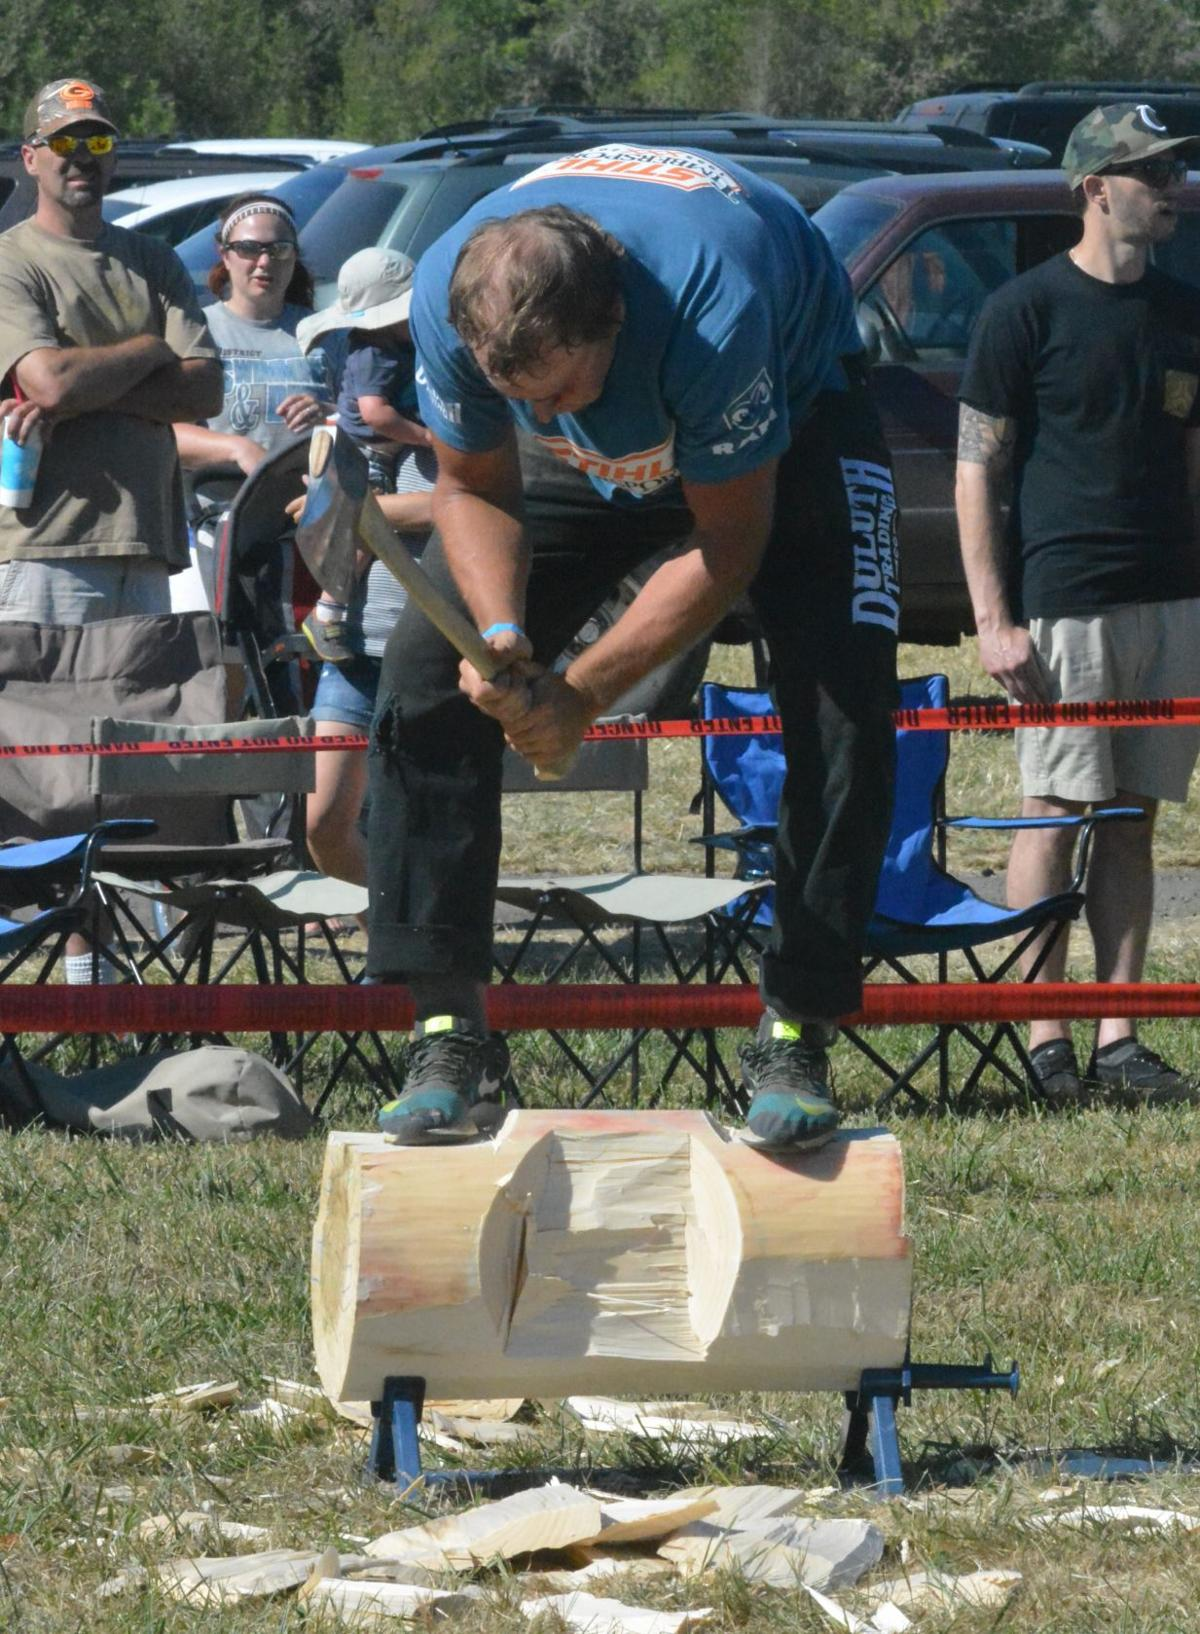 Frolic & Rodeo: Lumberjack competition 2017